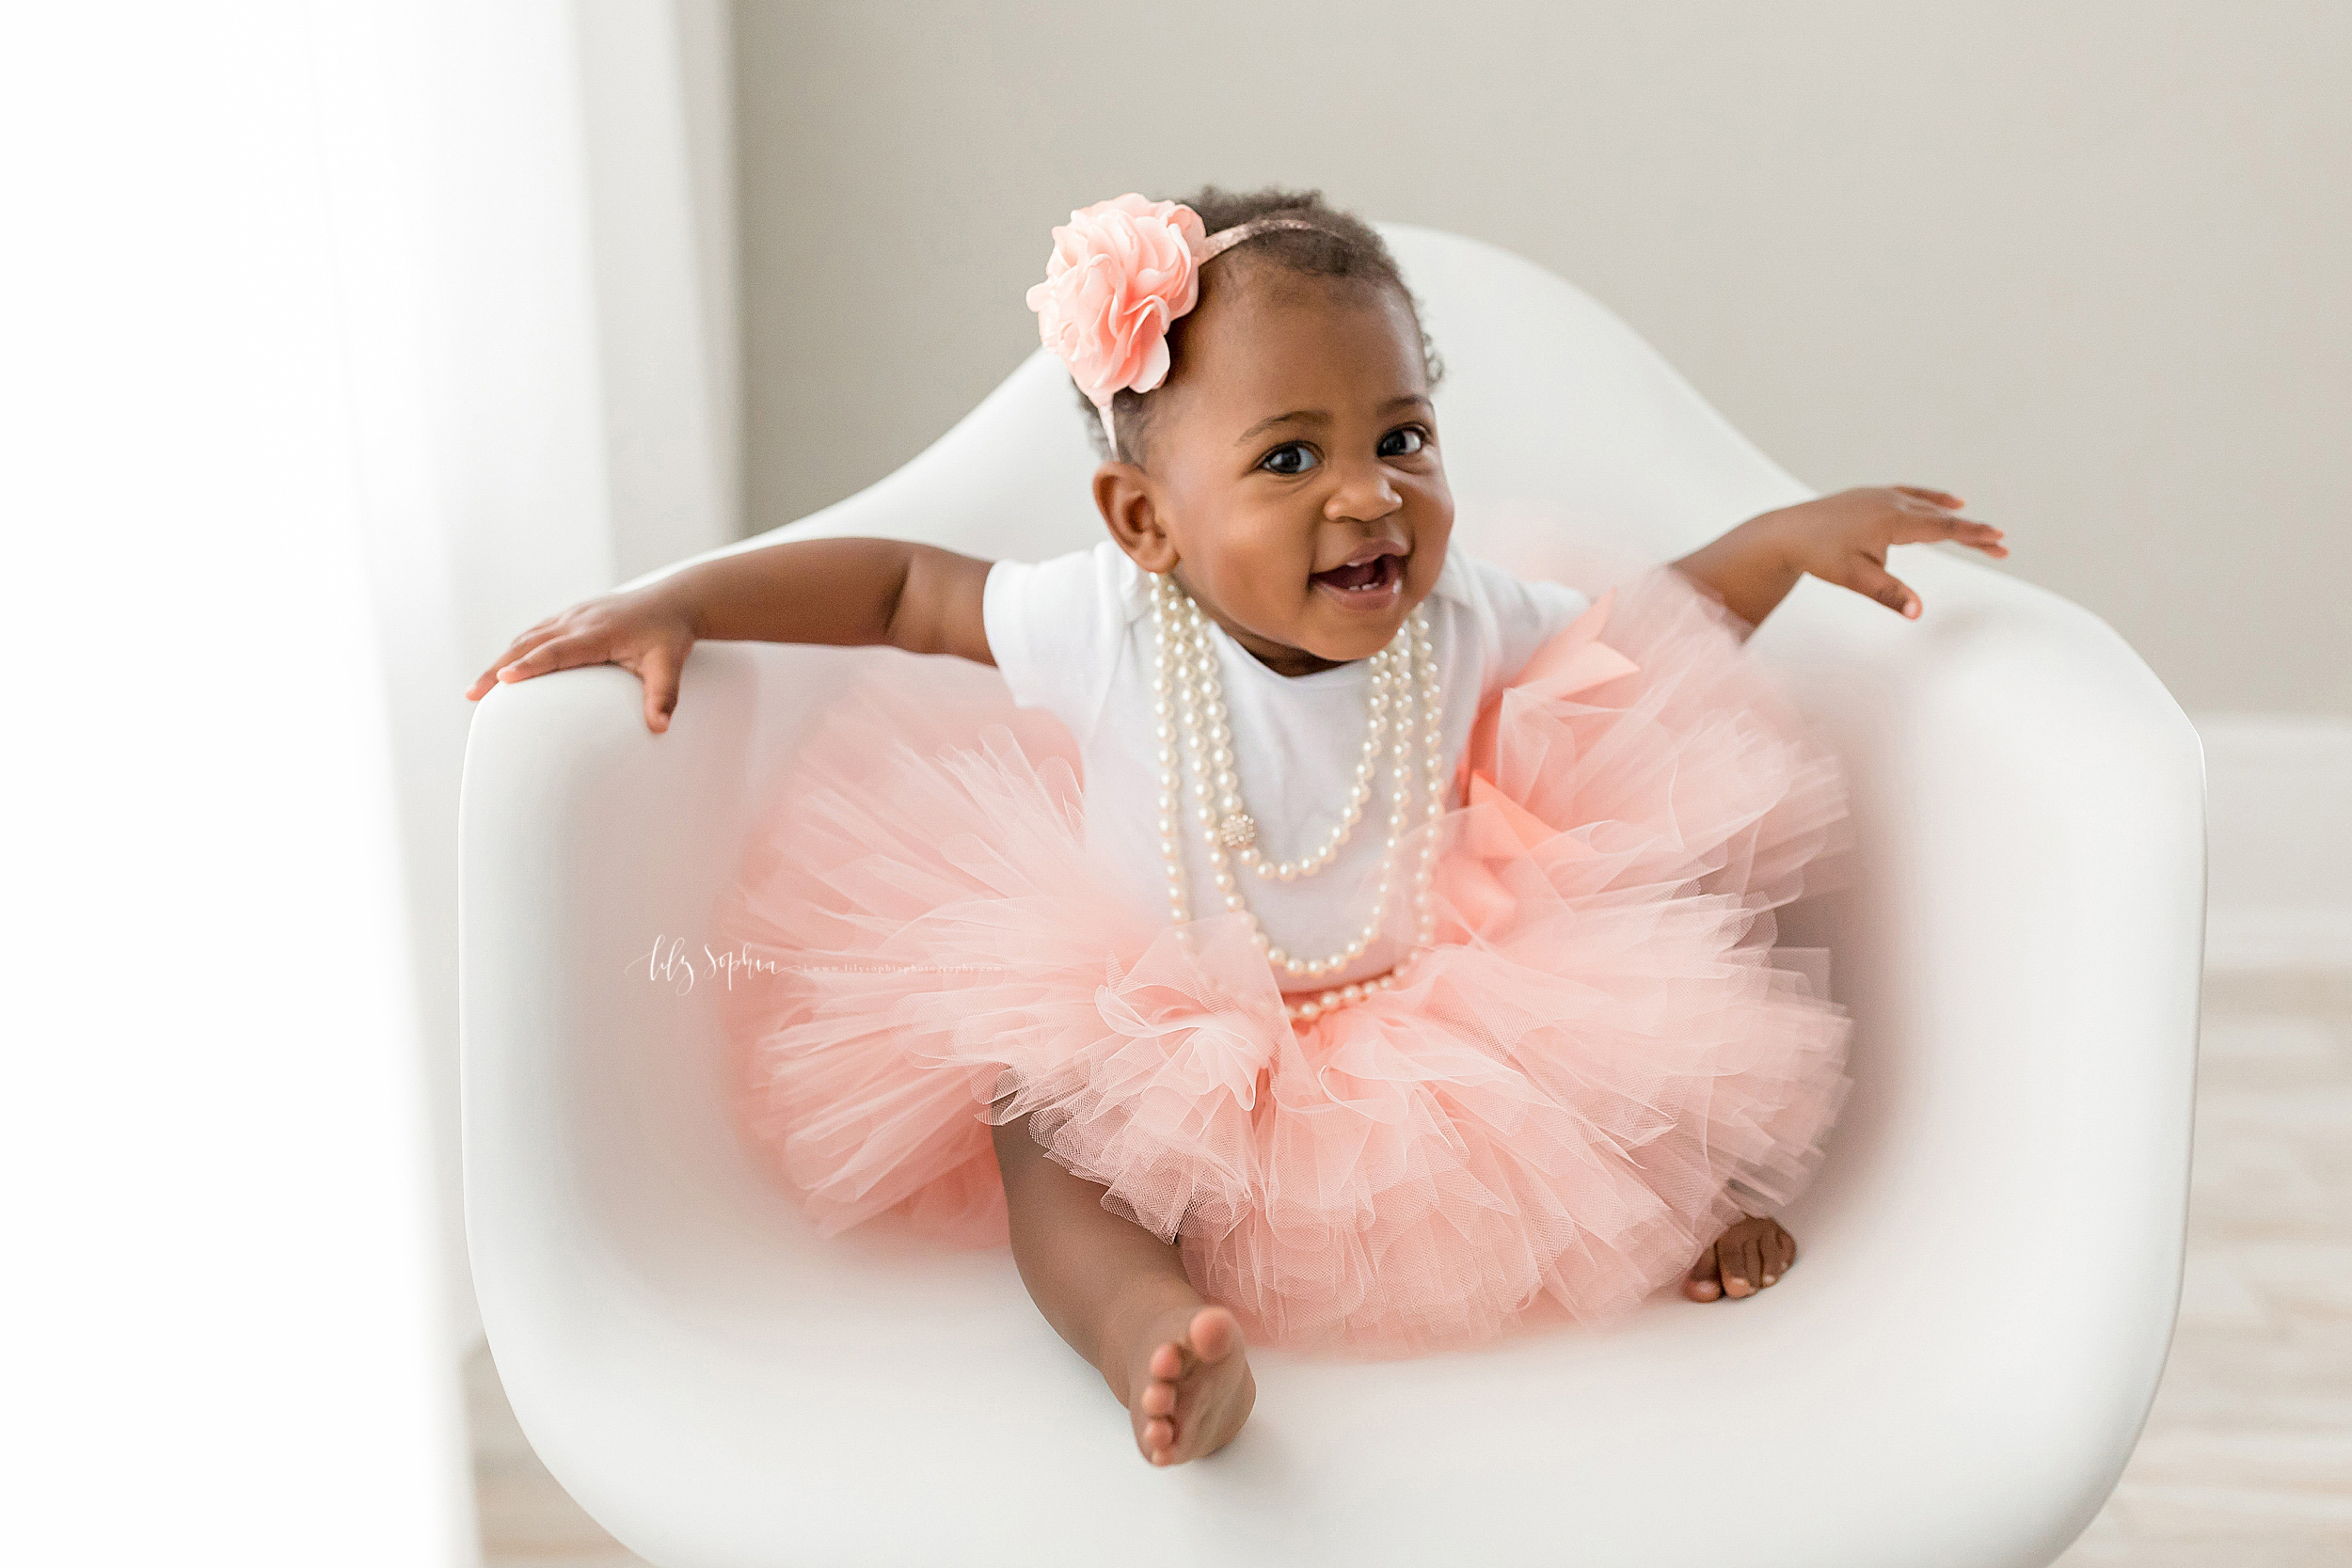 atlanta-smyrna-brookhaven-decatur-lily-sophia-photography-photographer-portraits-grant-park-intown-first-birthday-cake-smash-one-year-old-toddler-baby-girl_0012.jpg